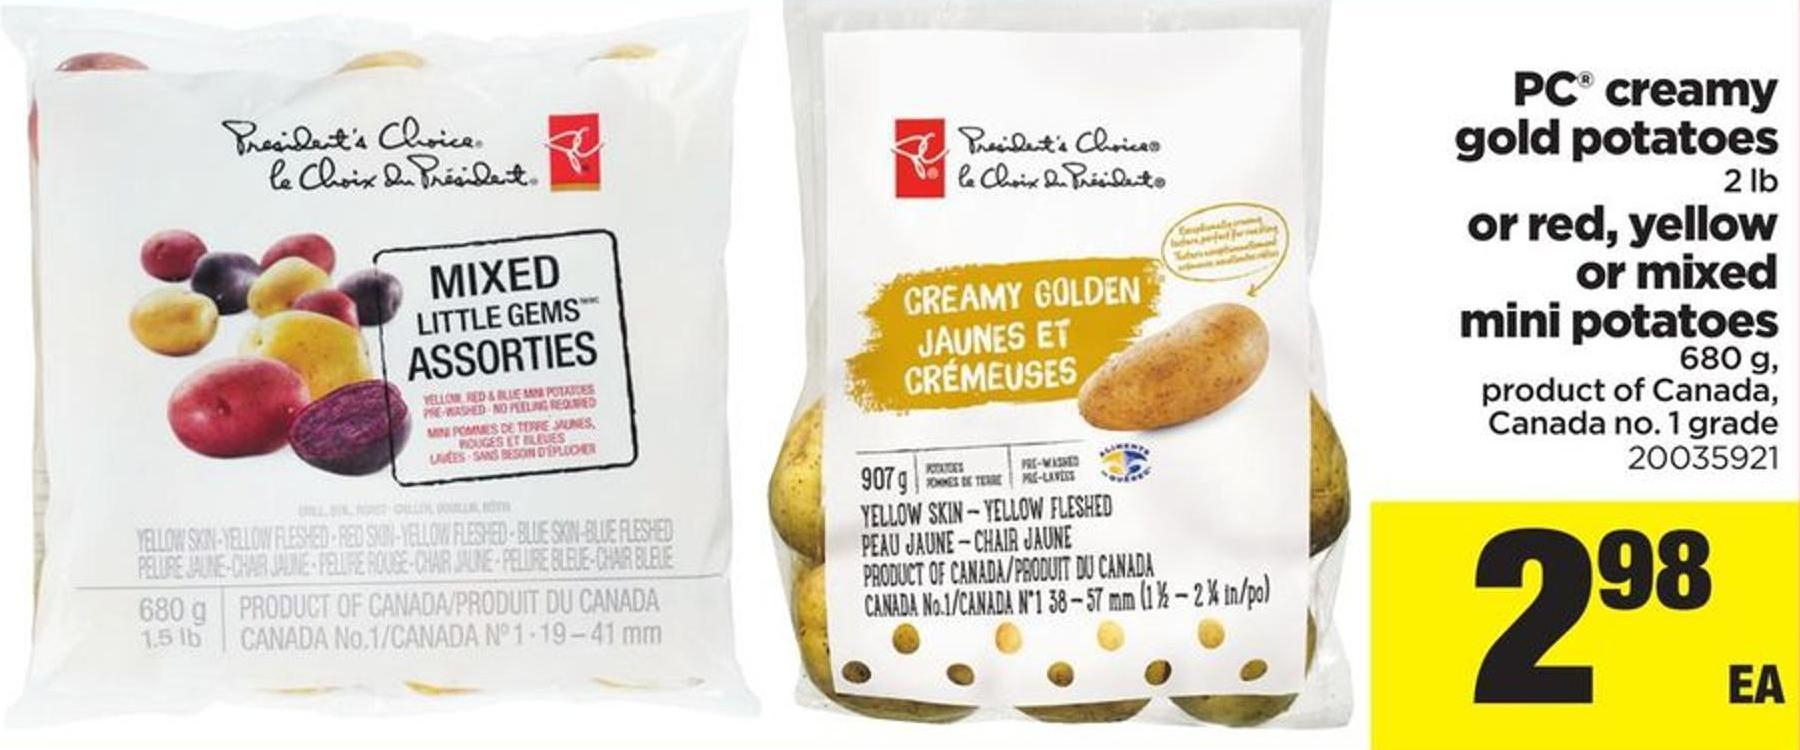 PC Creamy Gold Potatoes 2 Lb Or Red - Yellow Or Mixed Mini Potatoes - 680 g